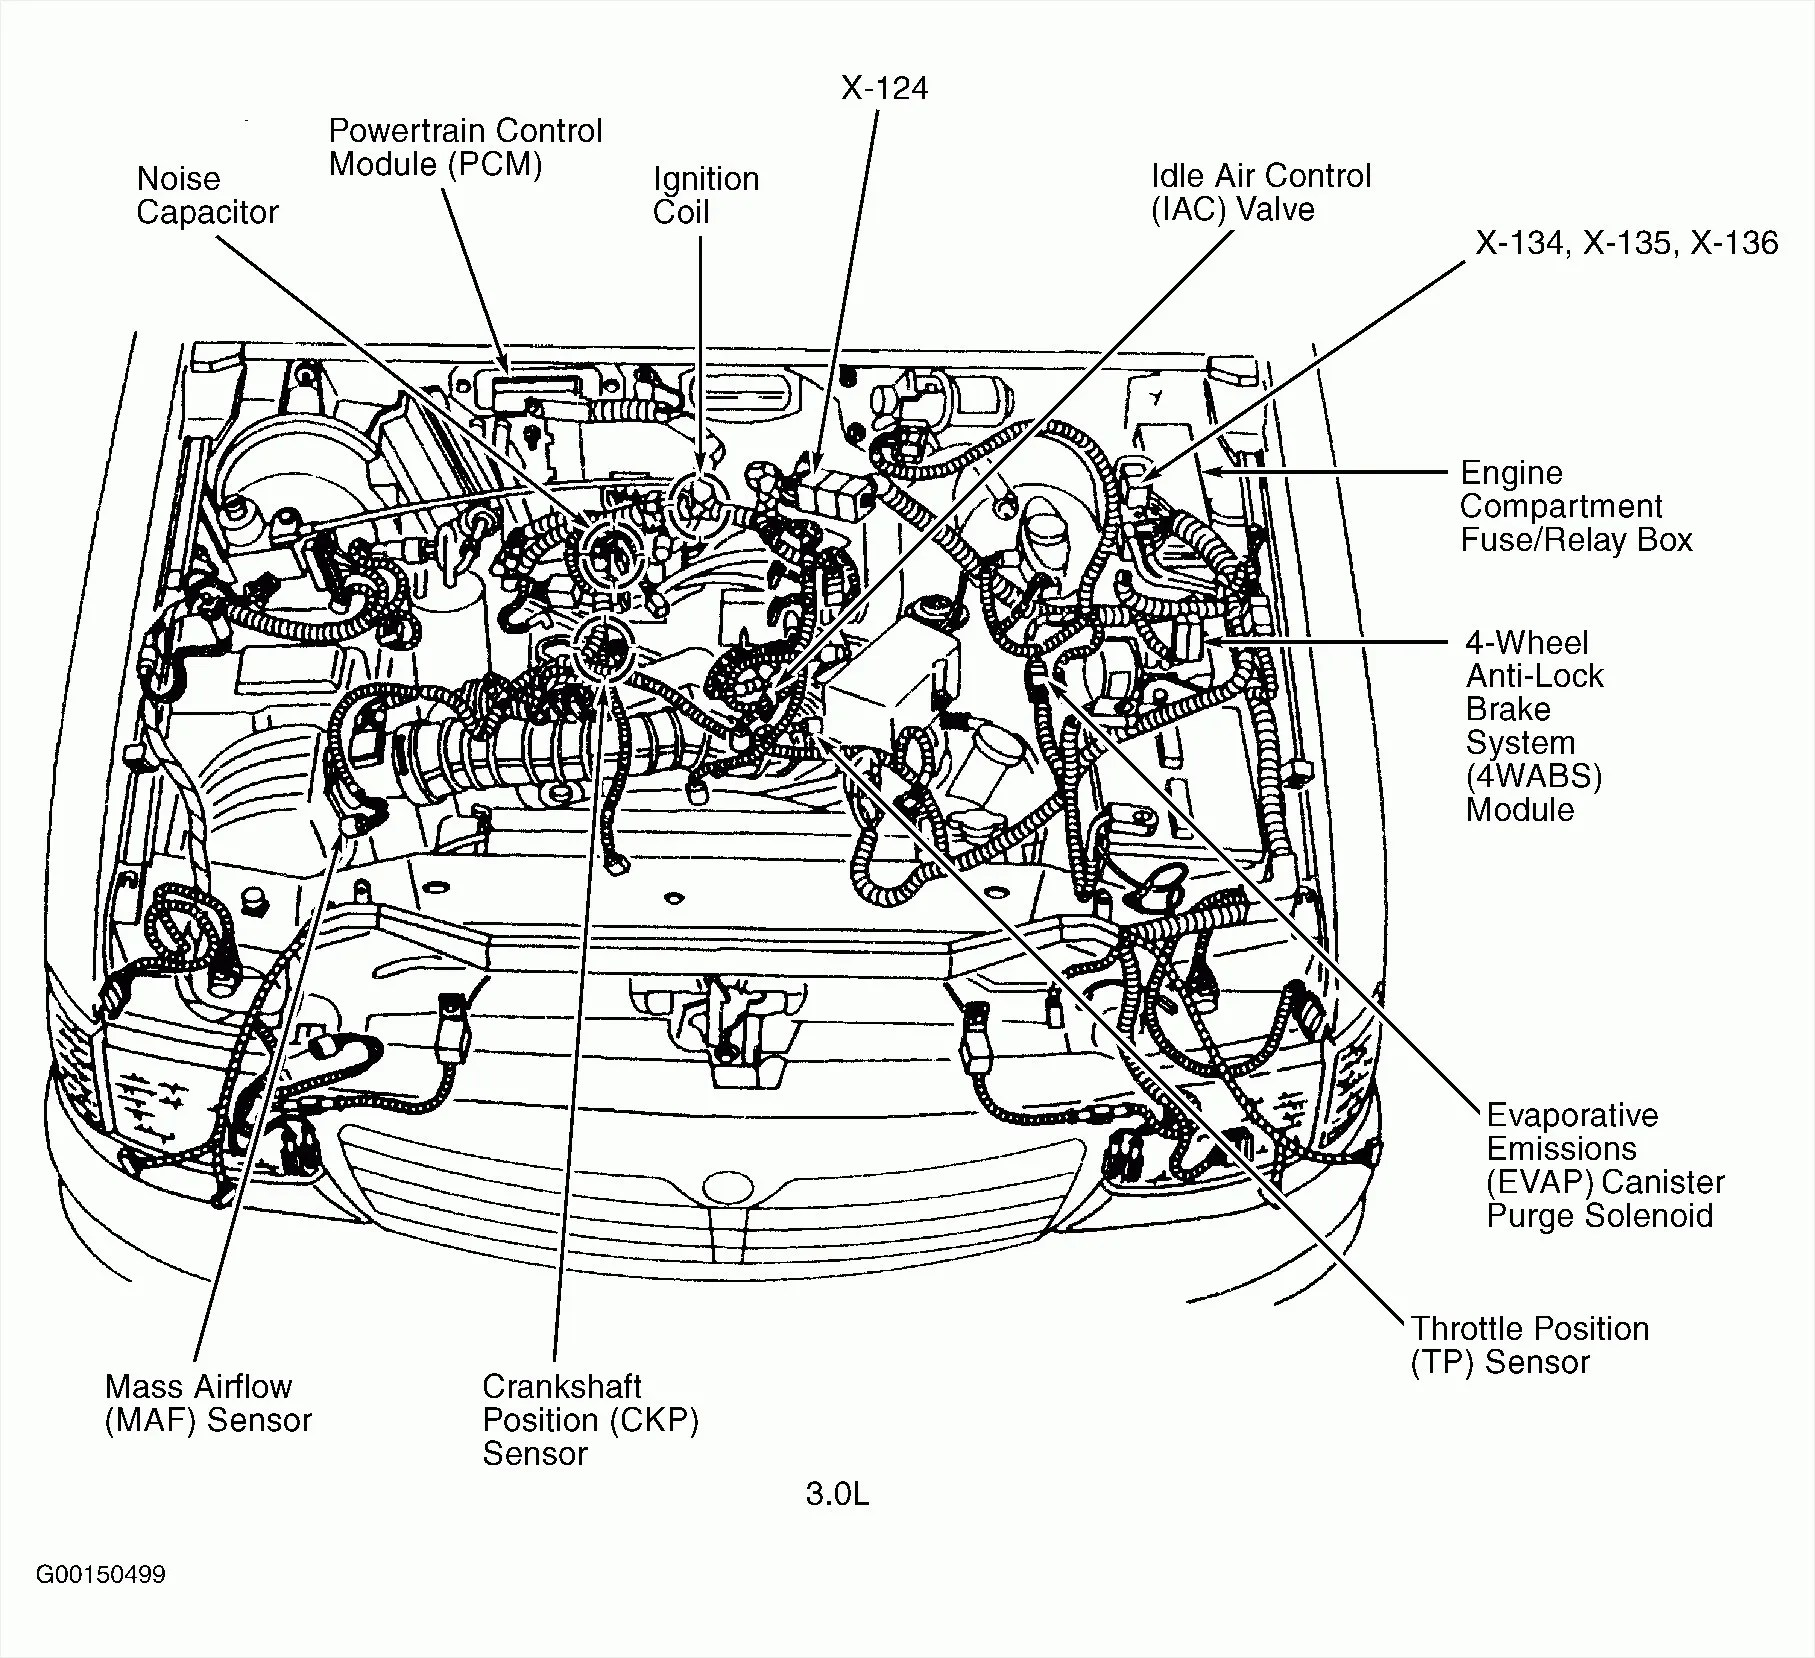 hight resolution of 2001 impala engine diagram wiring diagram today 2001 impala 3 8 engine diagram